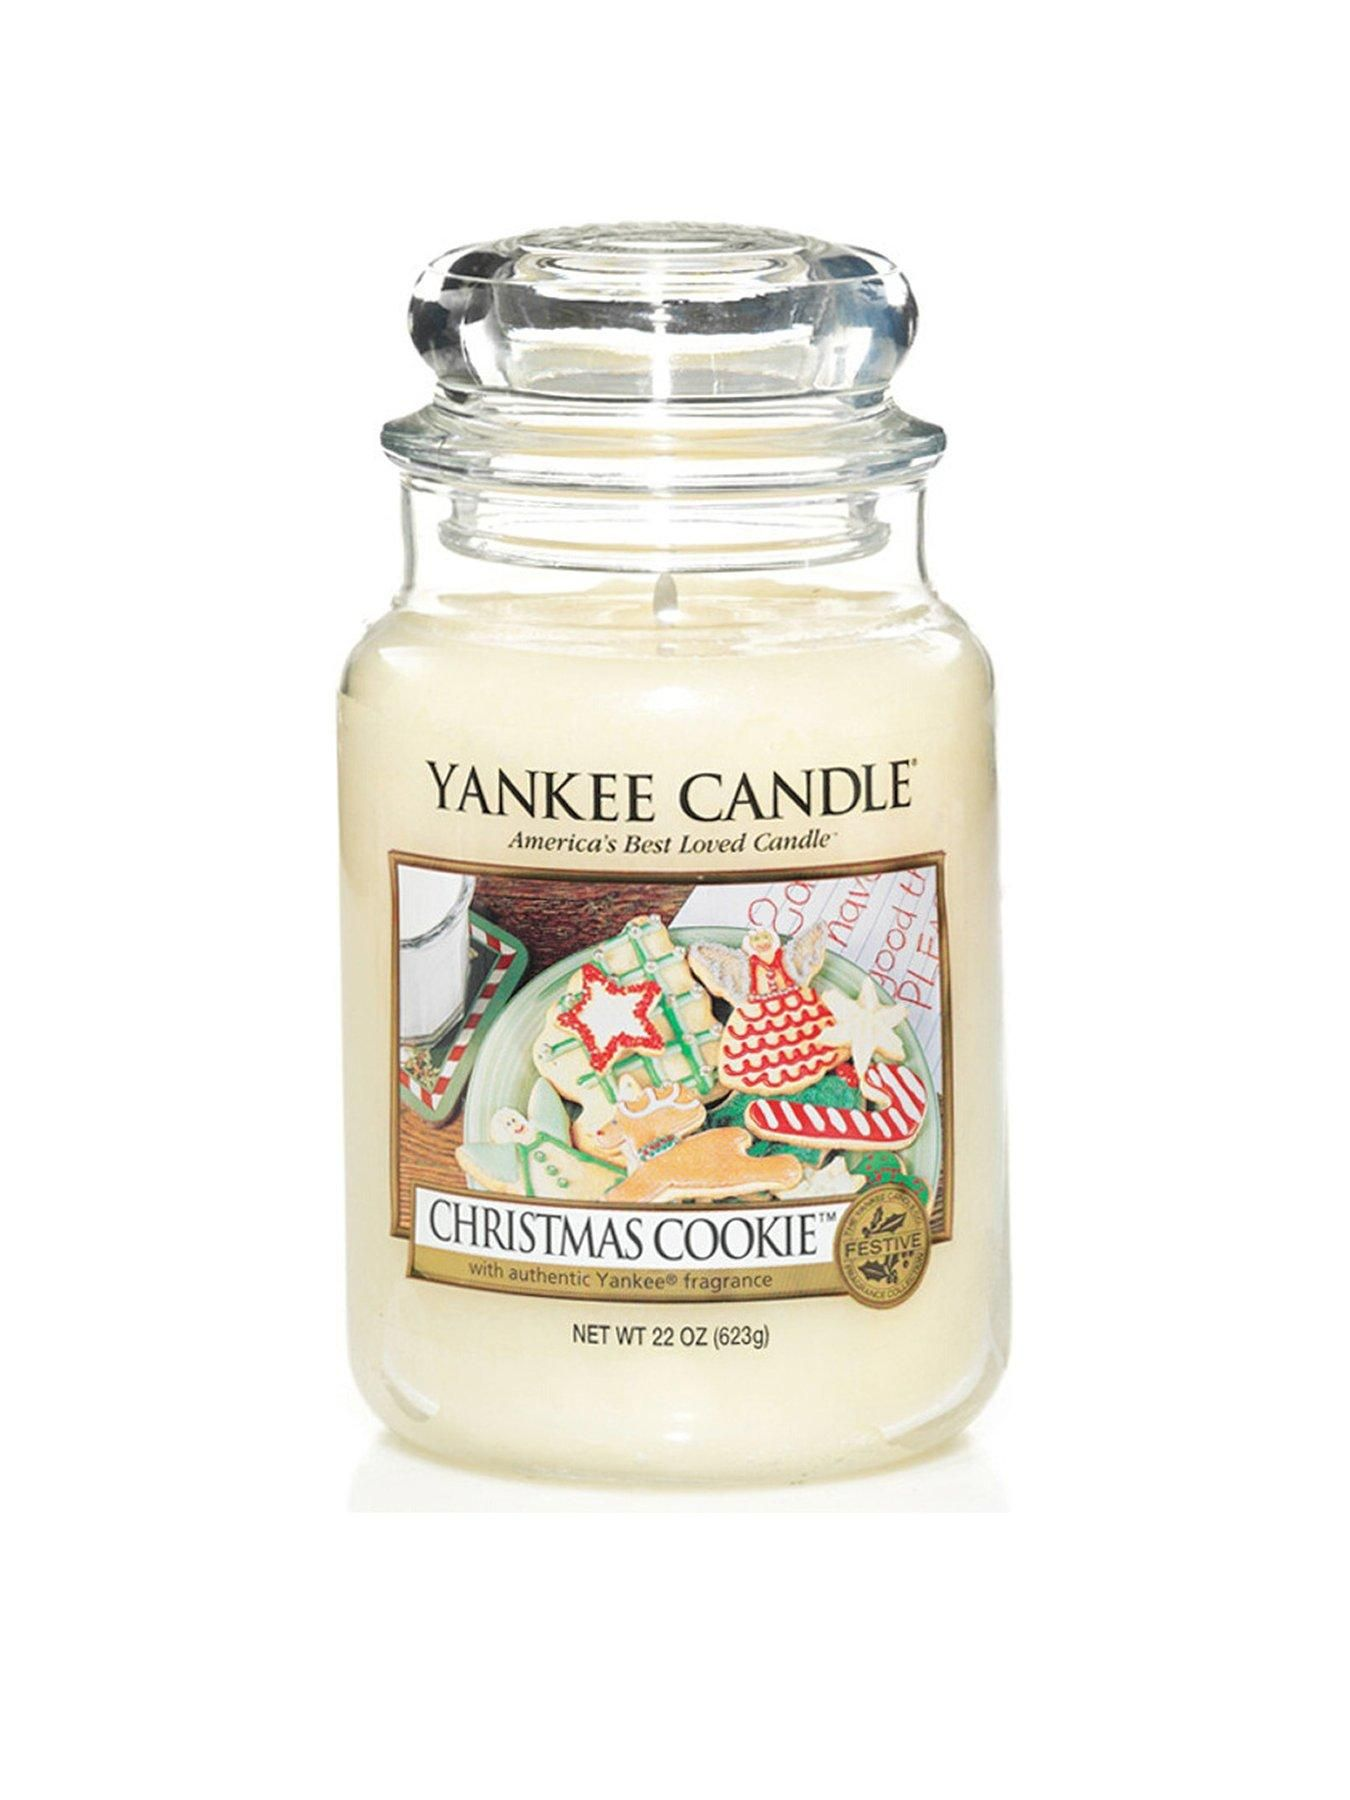 YANKEE CANDLE TART RARE AND AWESOME VANILLA ICING HOME CLASSICS